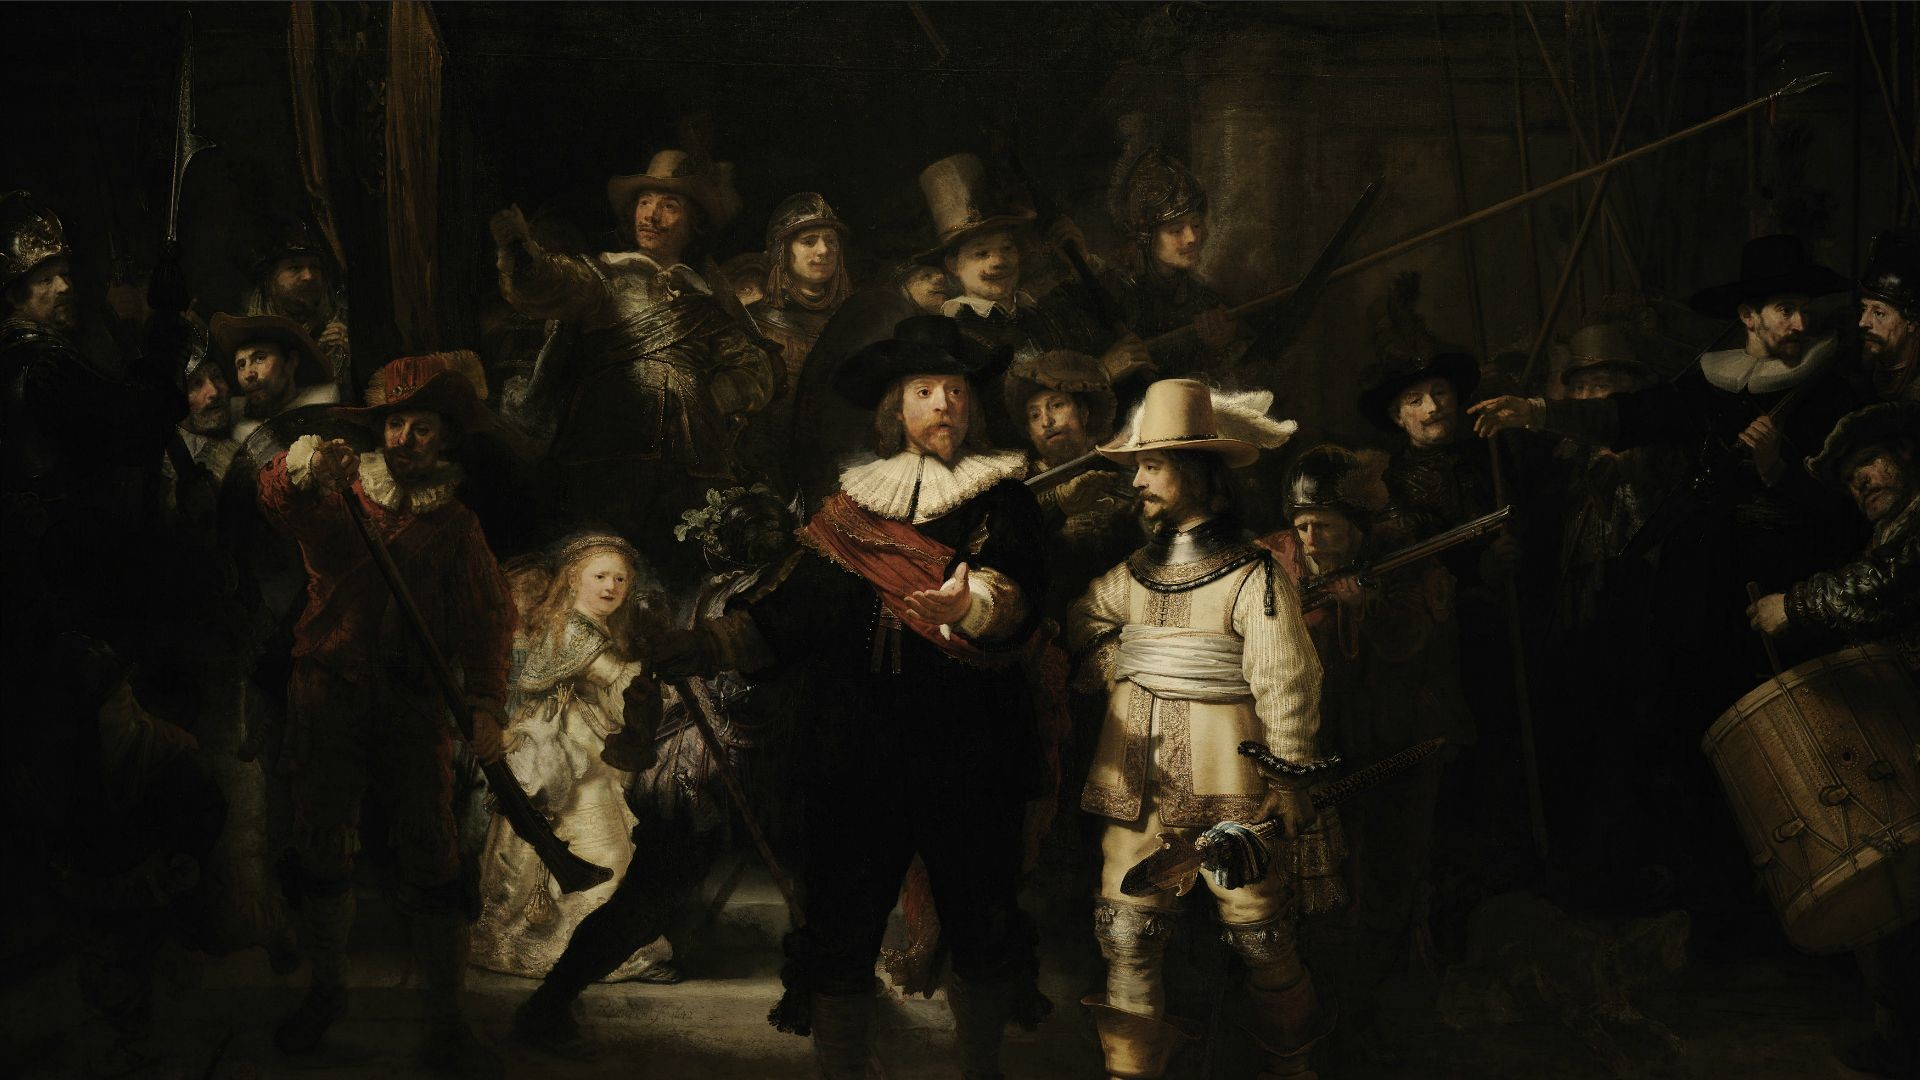 1920x1080 Artistic - Rembrandt's Night Watch Wallpaper